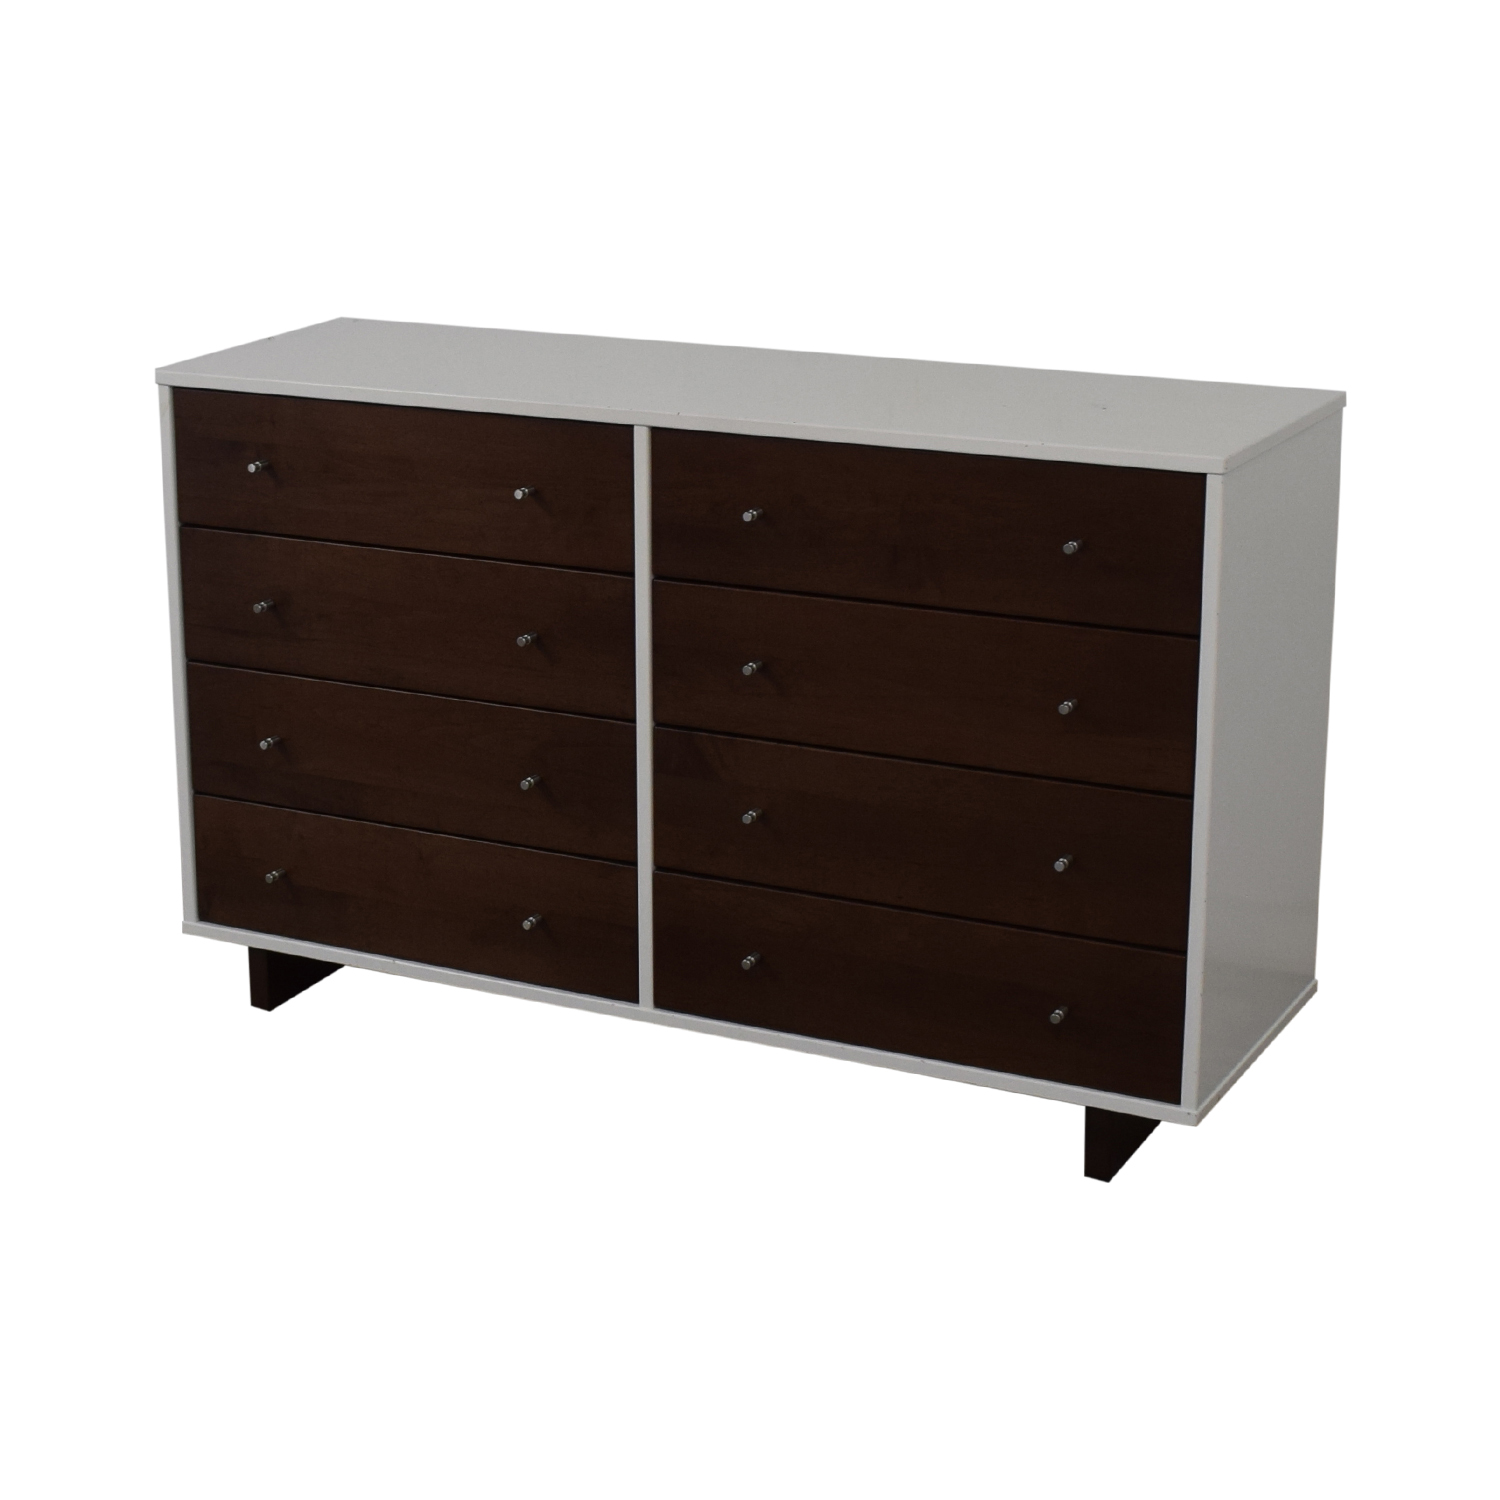 buy Room & Board Room & Board Moda Eight-Drawer Dresser online